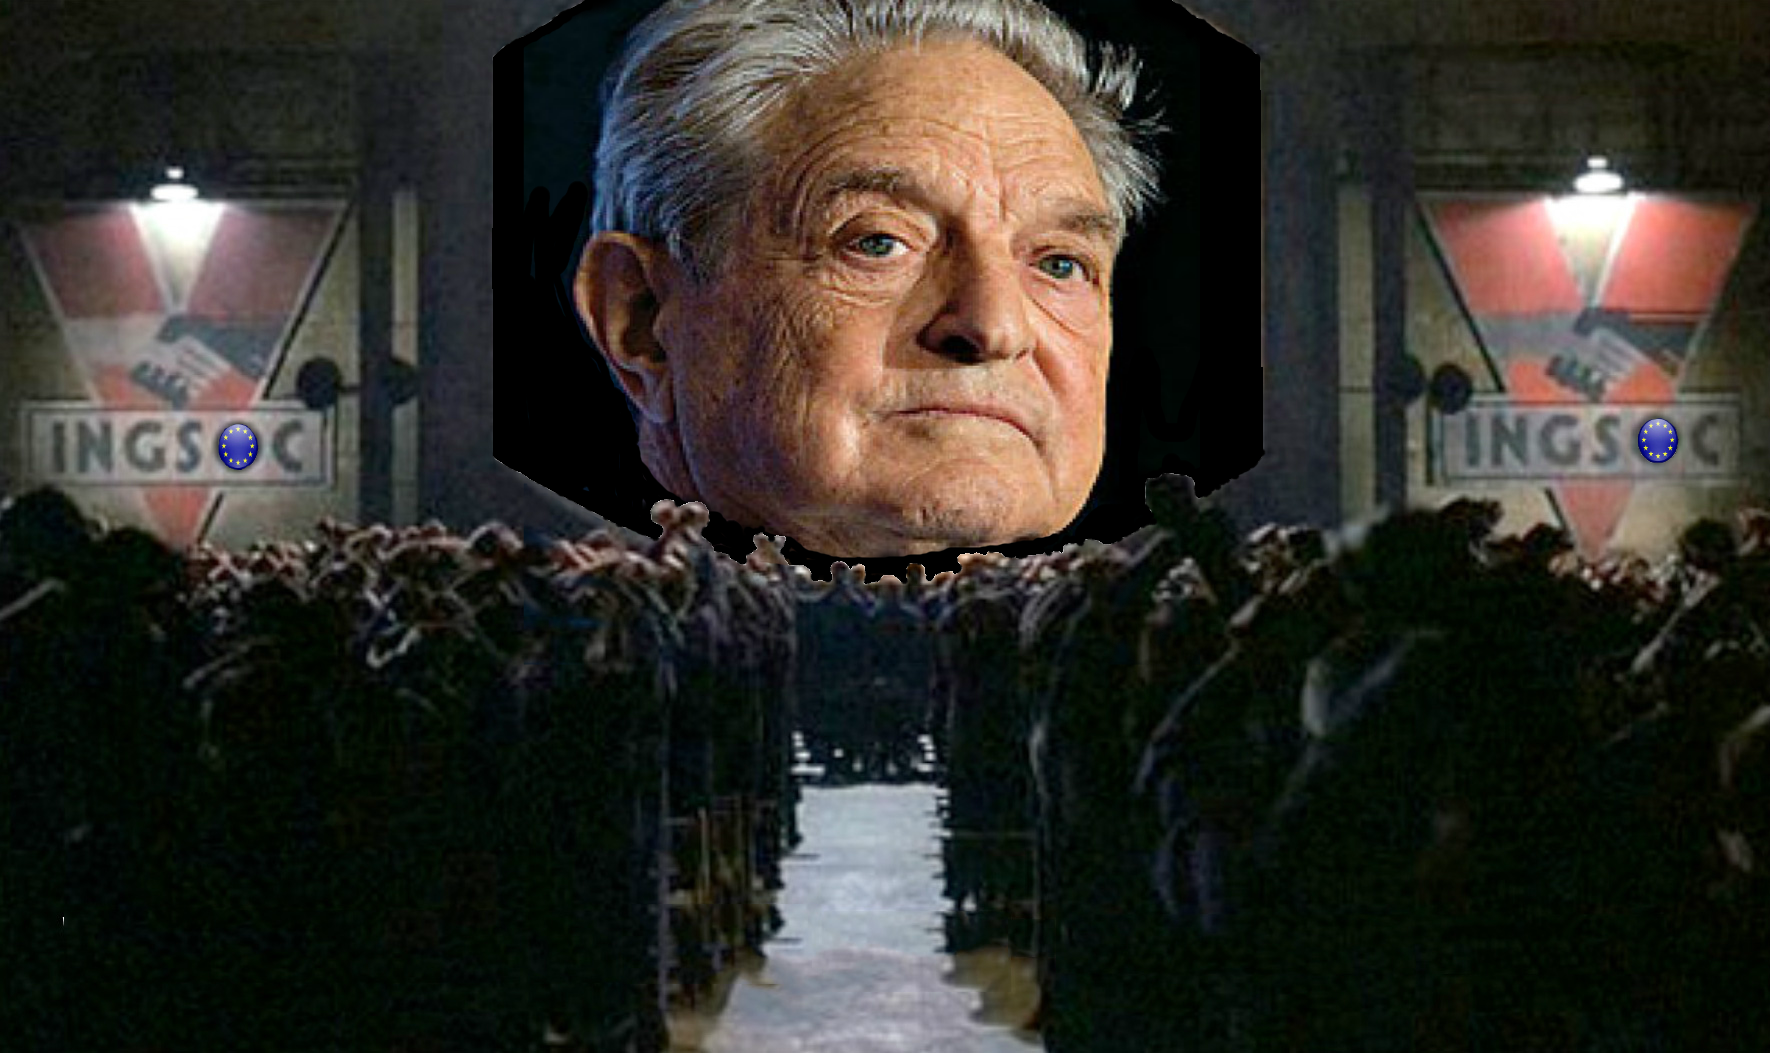 Soros Big Brother